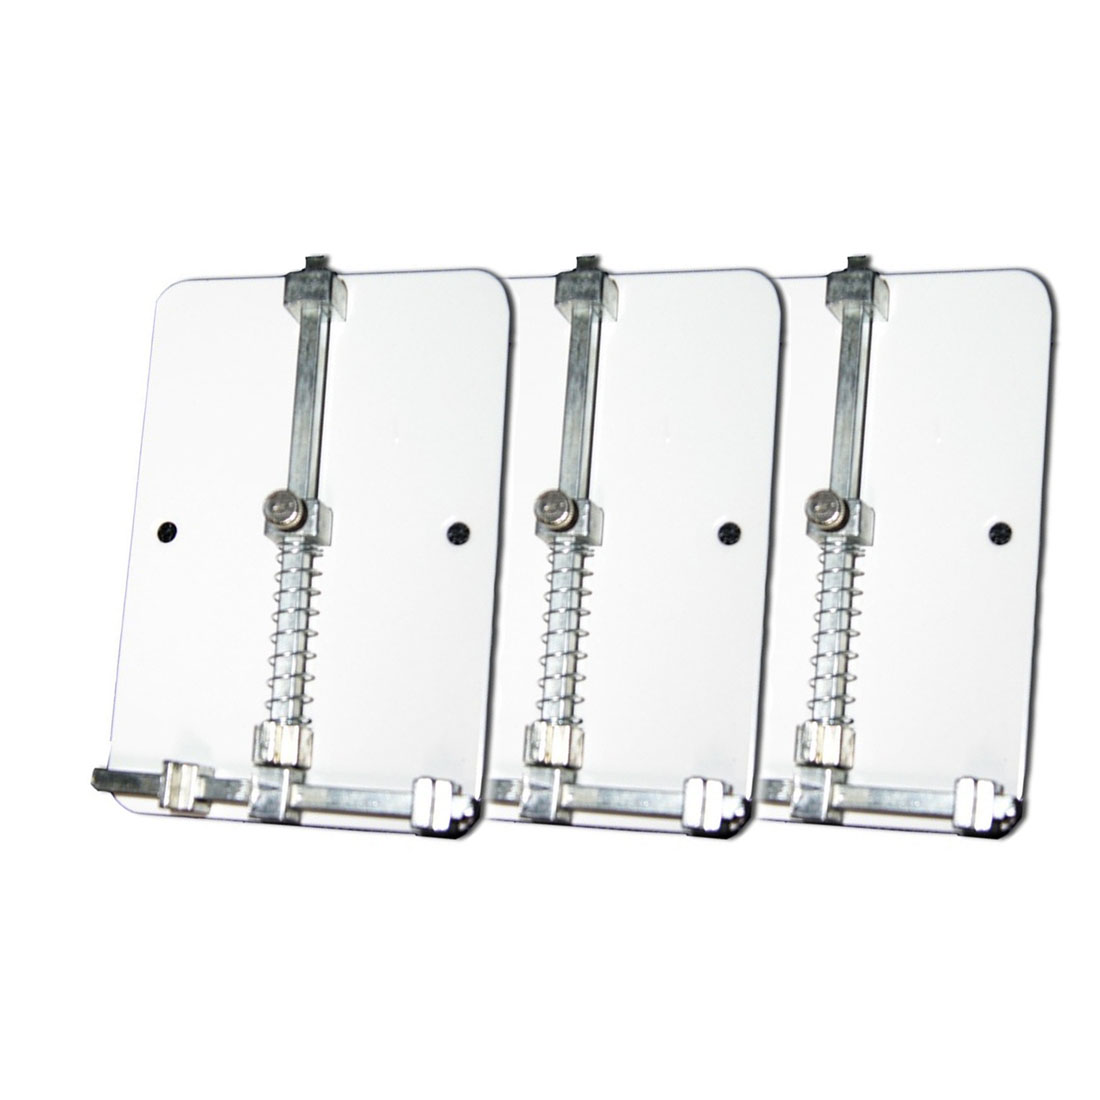 New 1pc High Quality 8*12cm Fixture Motherboard PCB Holder